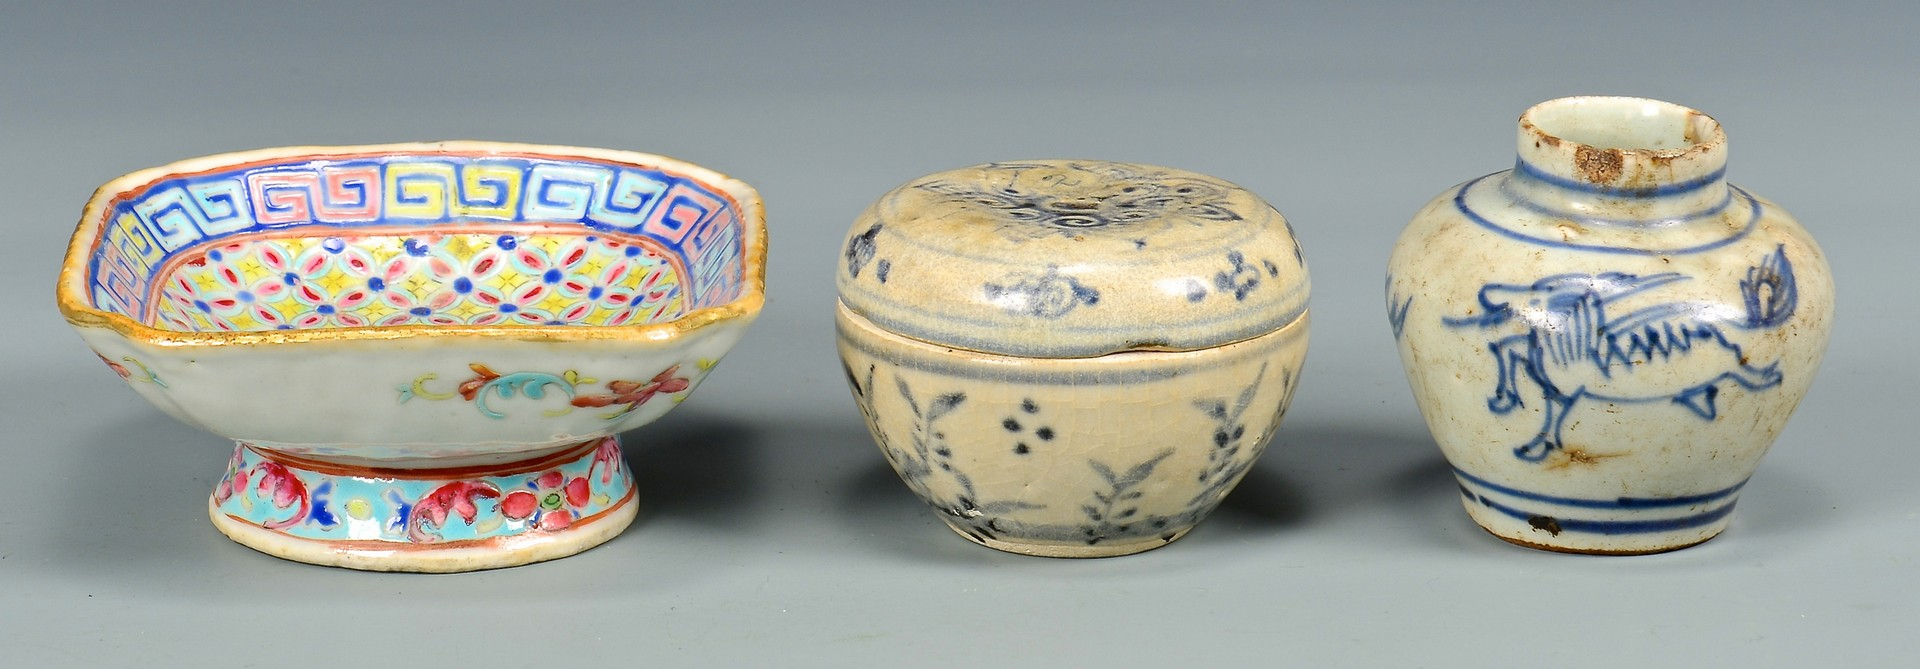 Lot 4010196: 6 Pcs. Chinese Porcelain